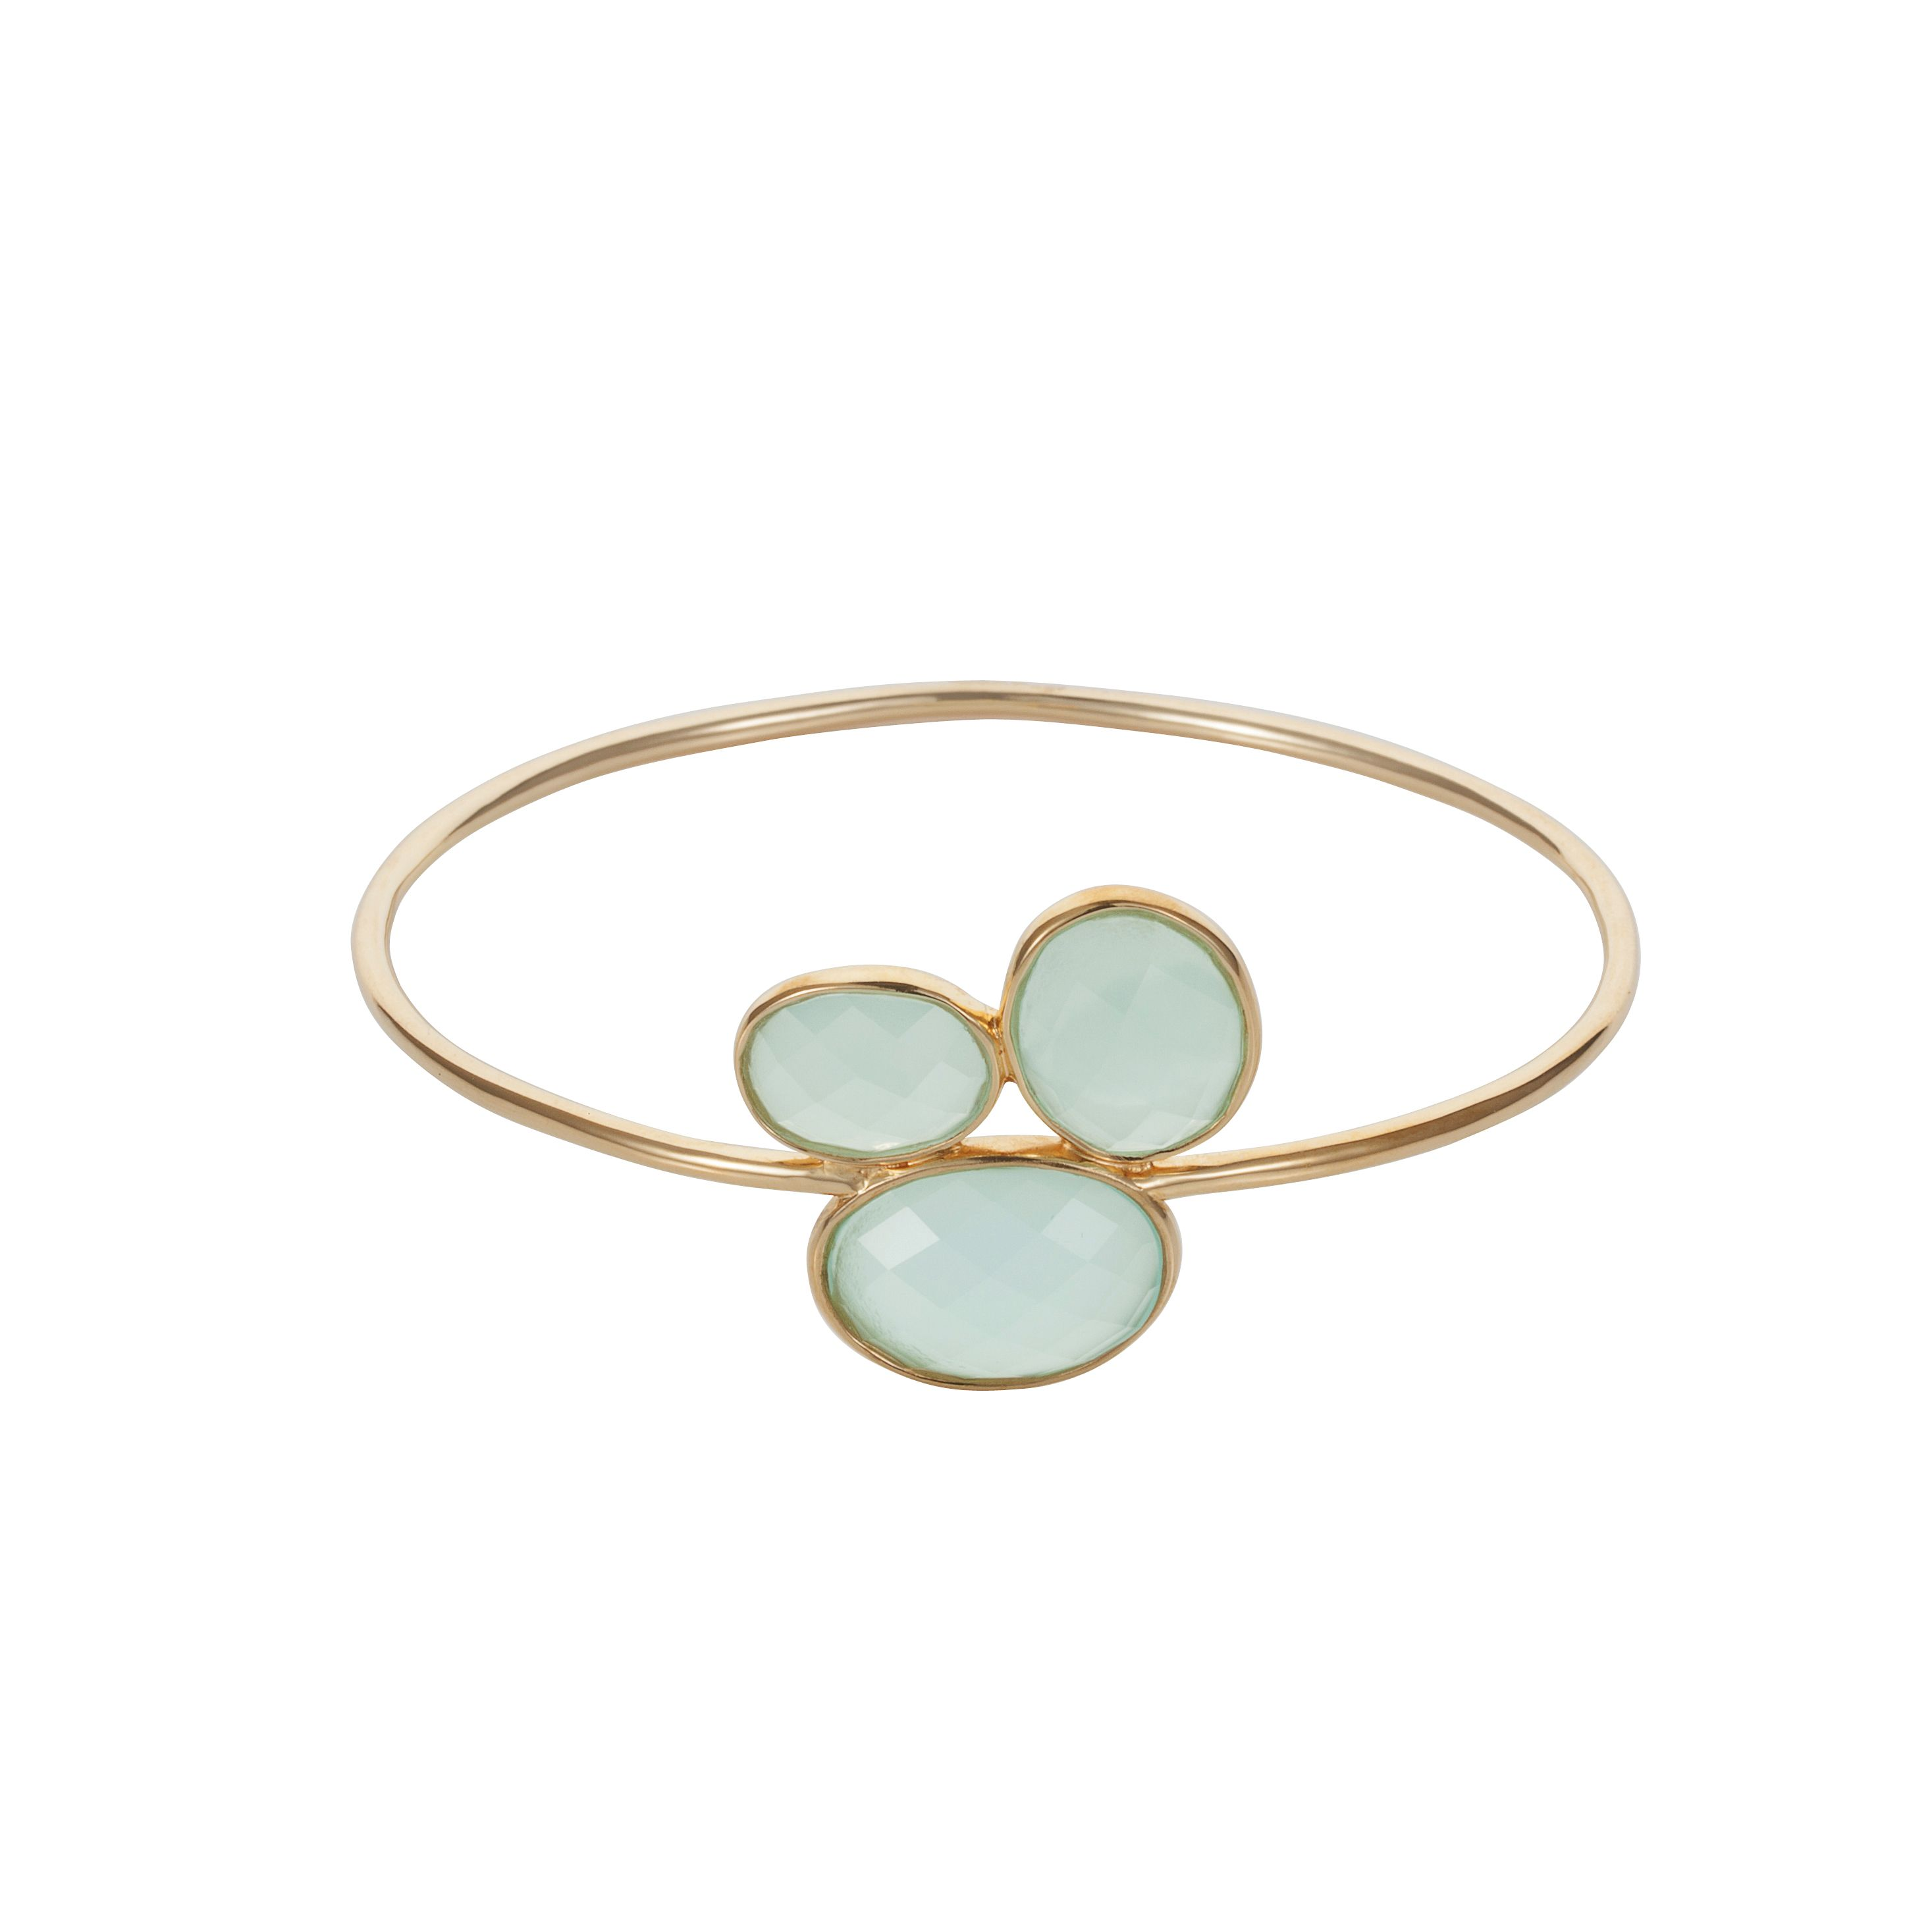 18ct gold plated sterling silver 14ct aqua chalce